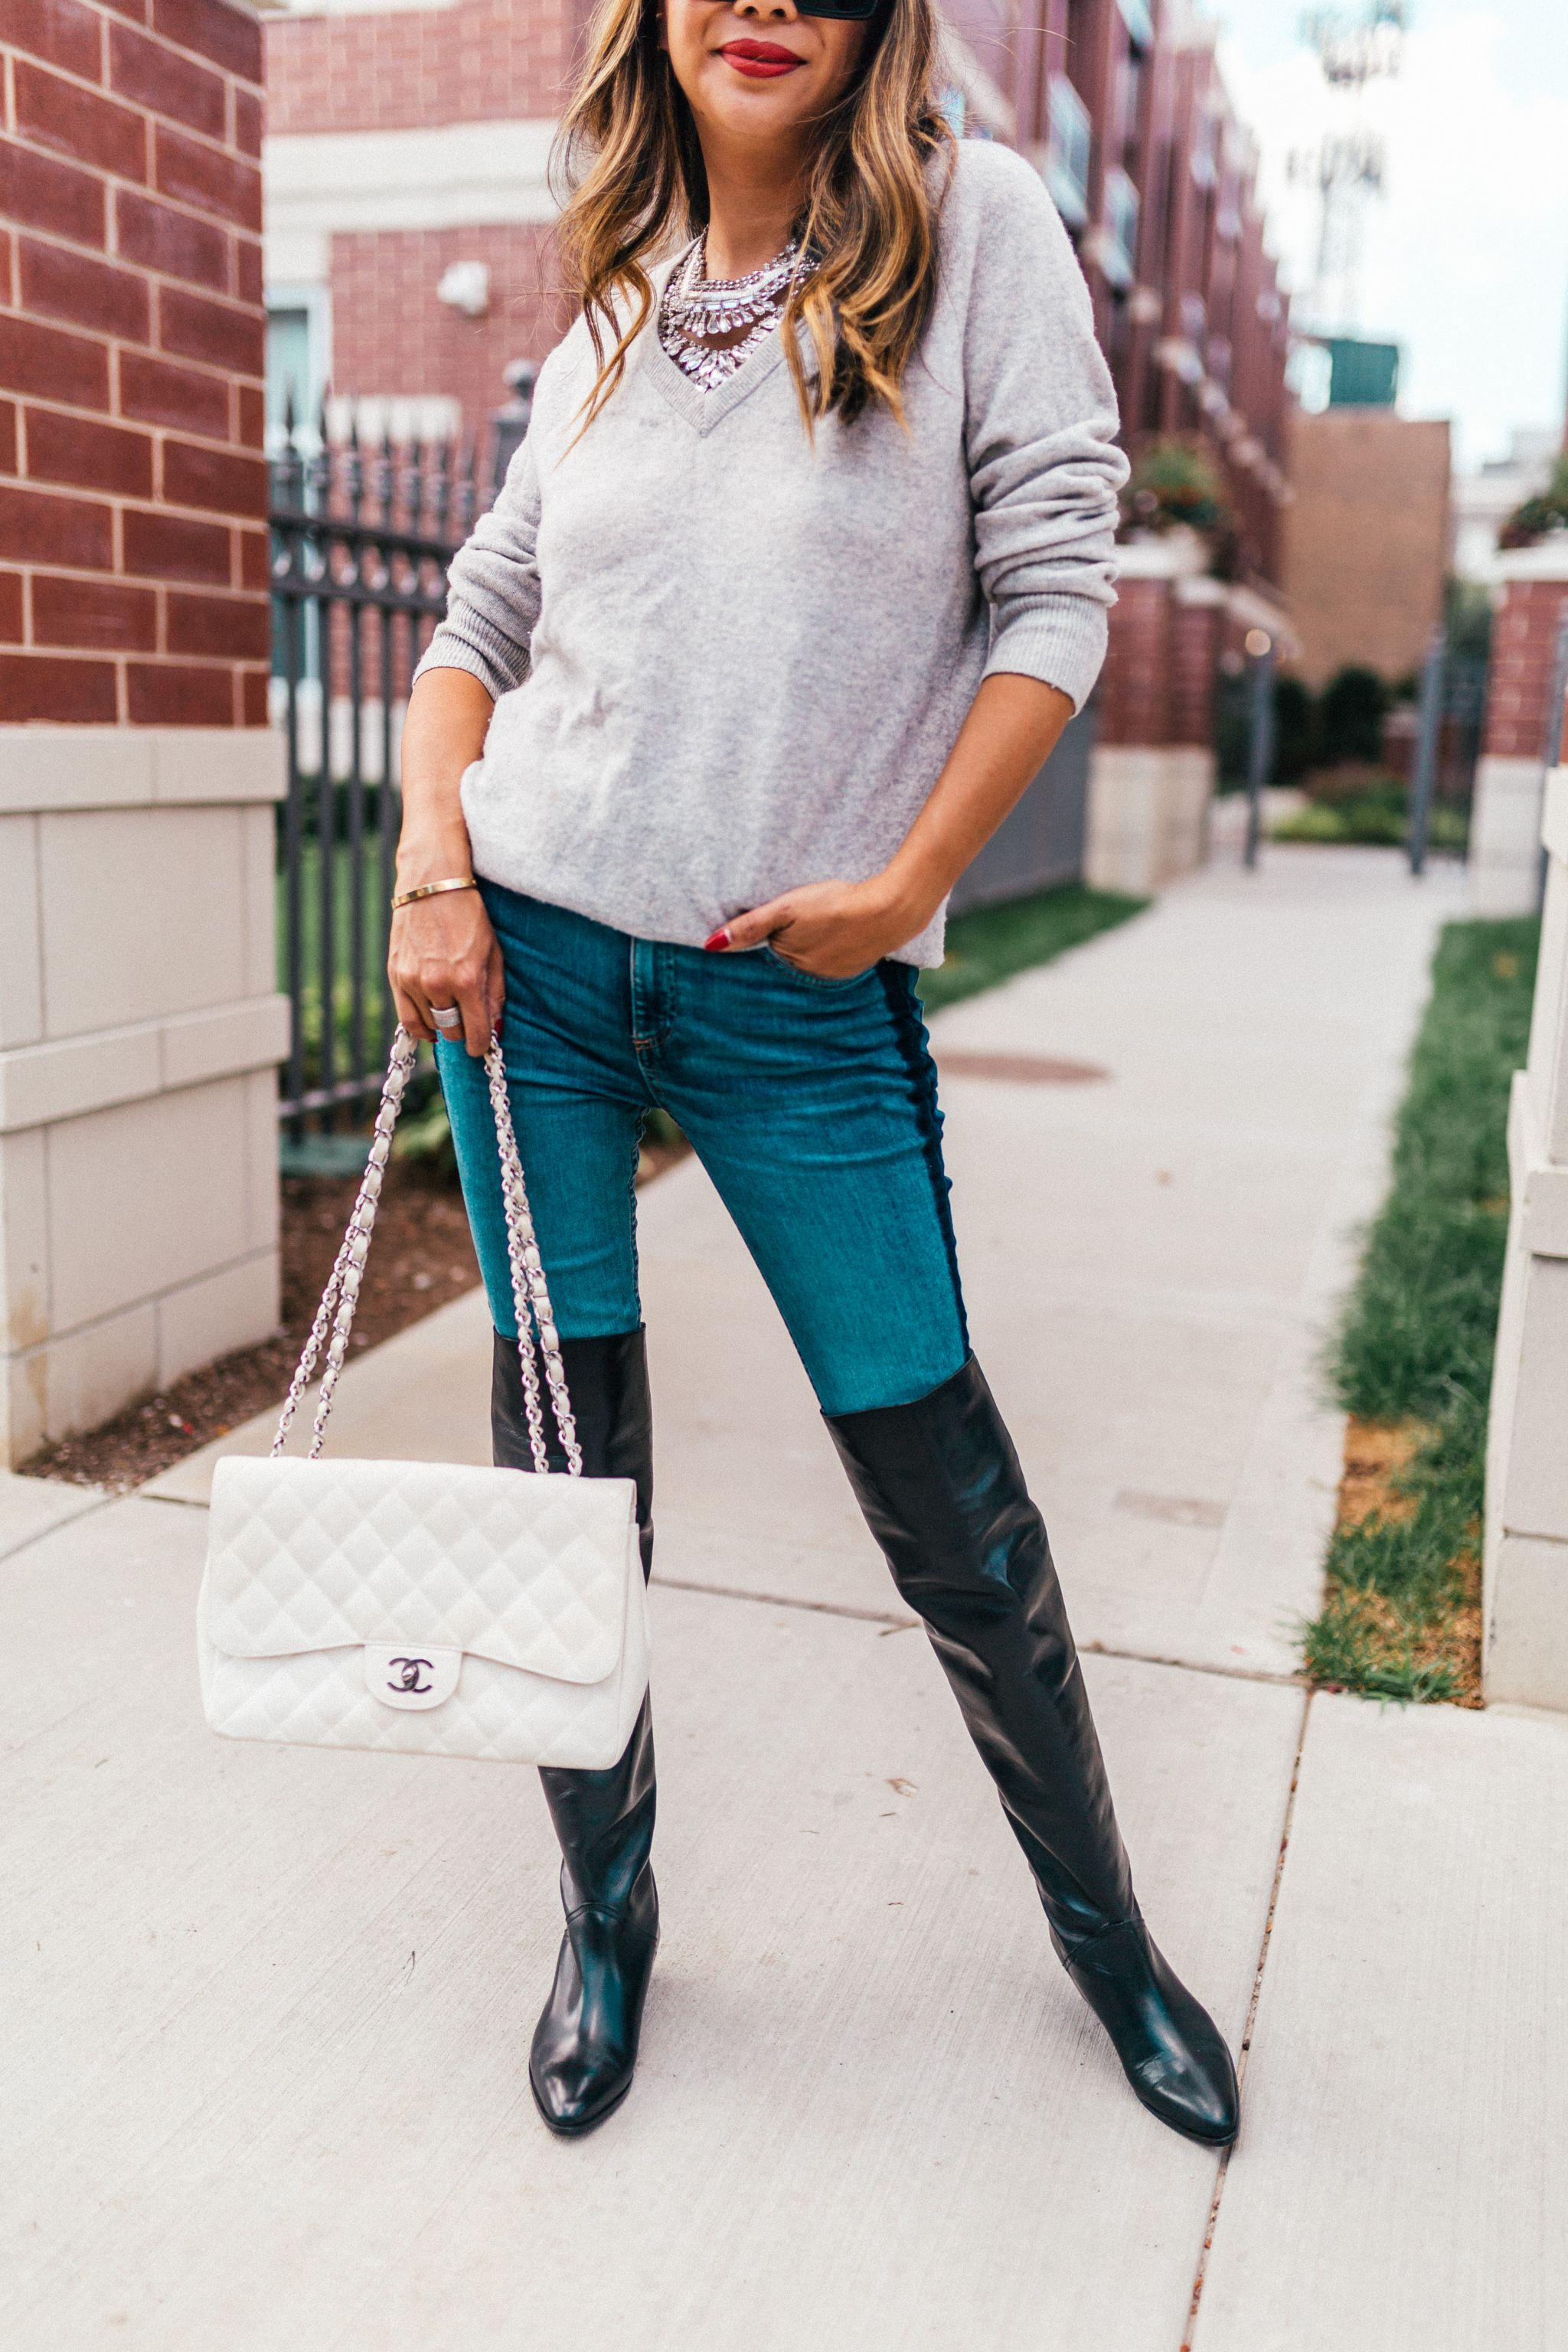 Chic Fall Outfit, Fall Style, best fall items, Closet staples for fall, How to be chic for Fall, Jennifer Worman, Chicago Style Blogger, Fall Outfit Ideas